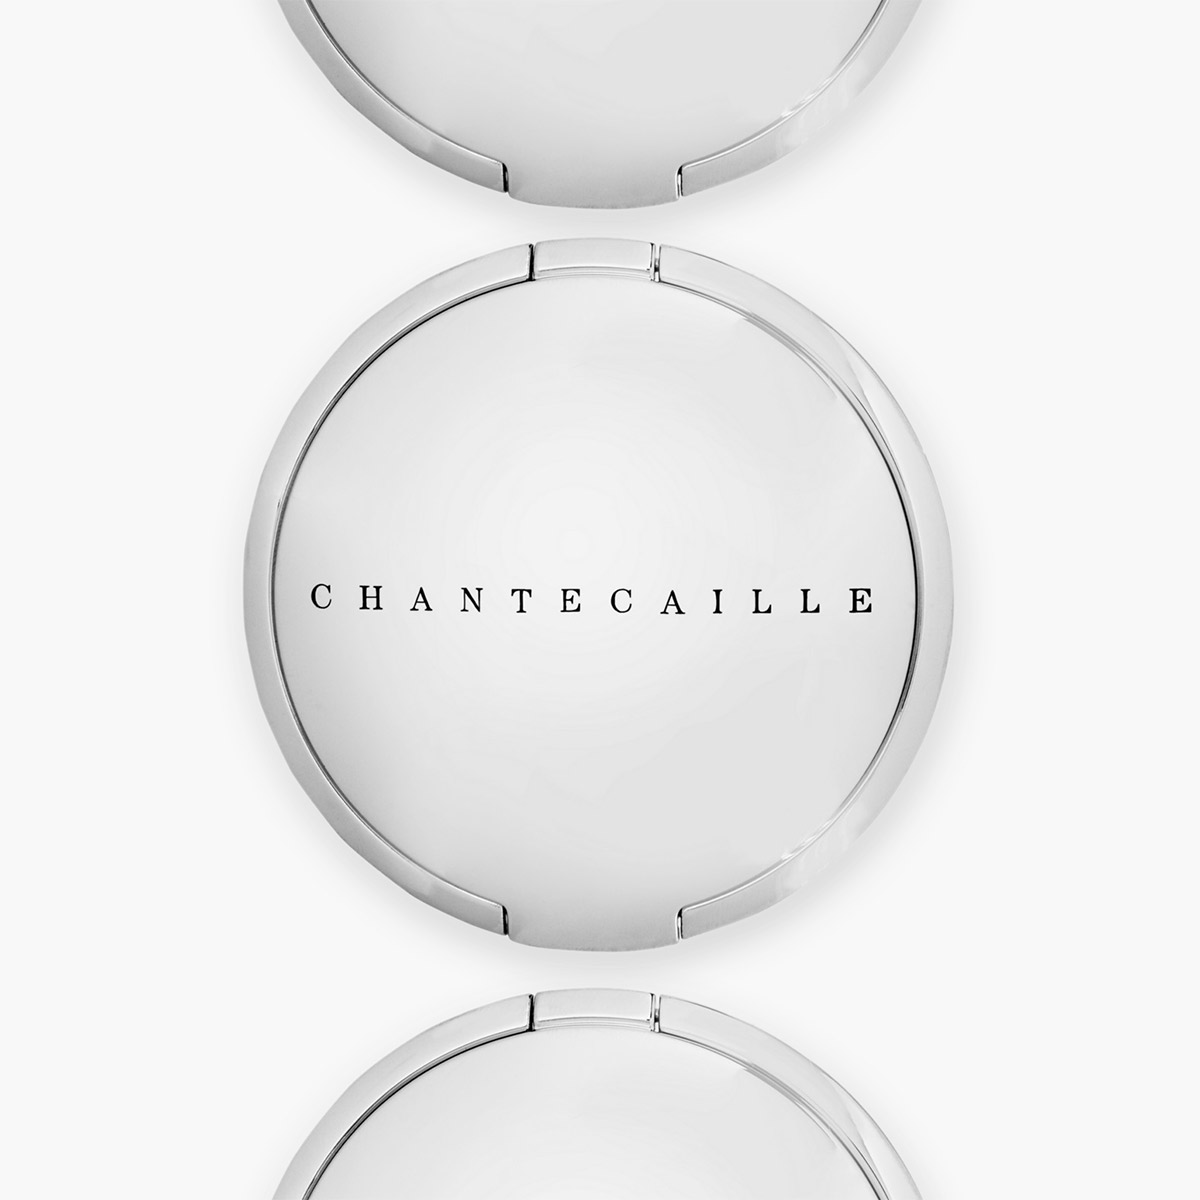 Chantecaille Cosmetics Primary Packaging